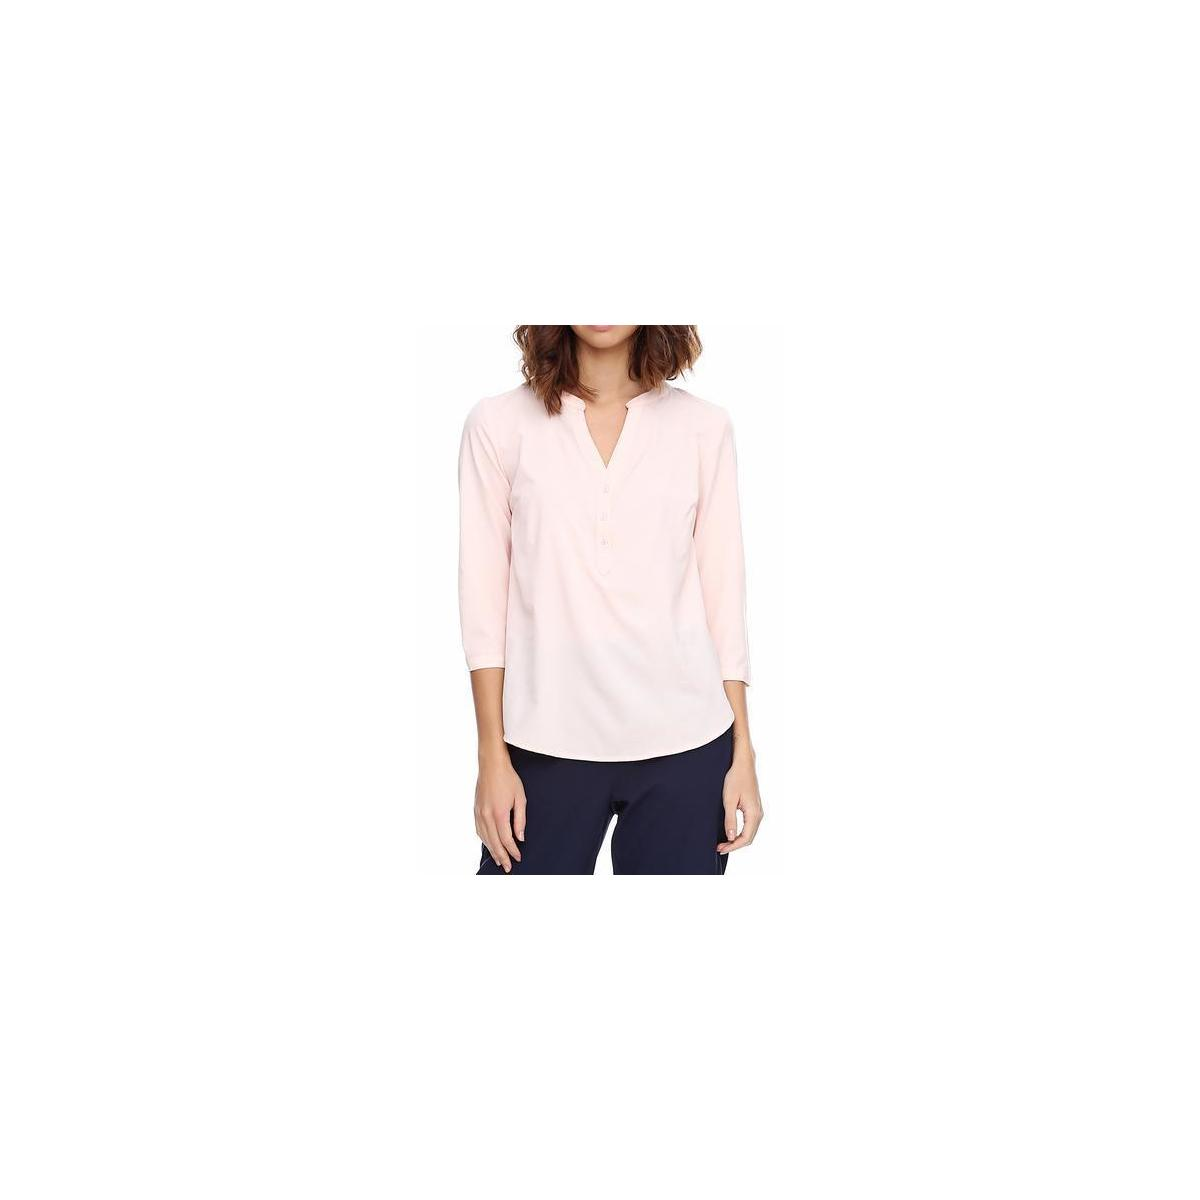 Womens 3/4 Sleeve V Neck Casual Blouse Relaxed-Fit Shirt Tops for Work Office